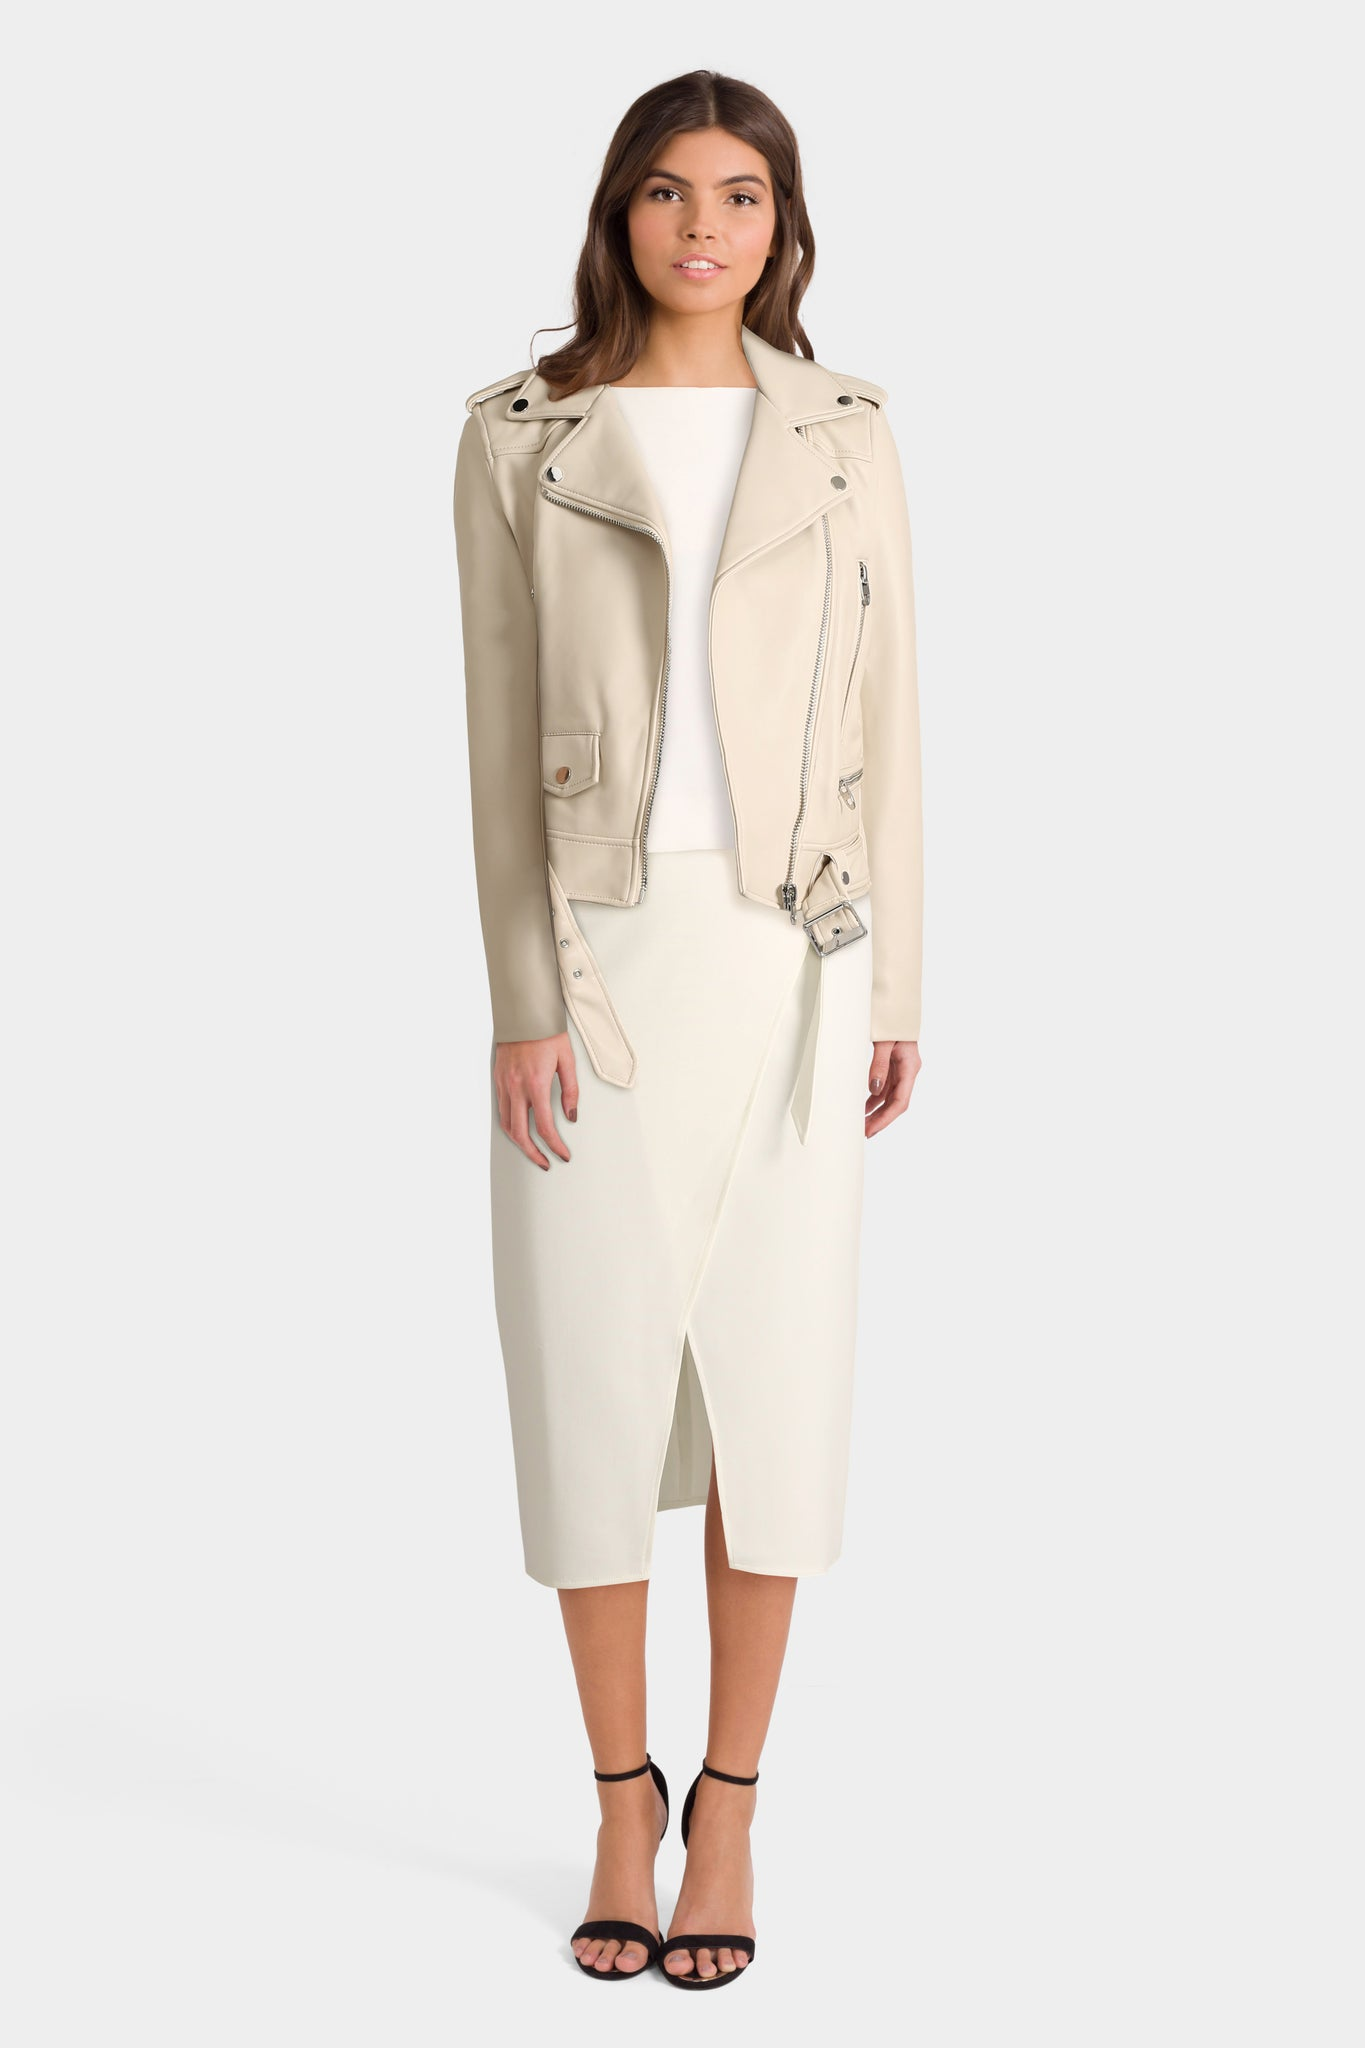 Pencil Skirt With White Top & Leather Look Biker Jacket